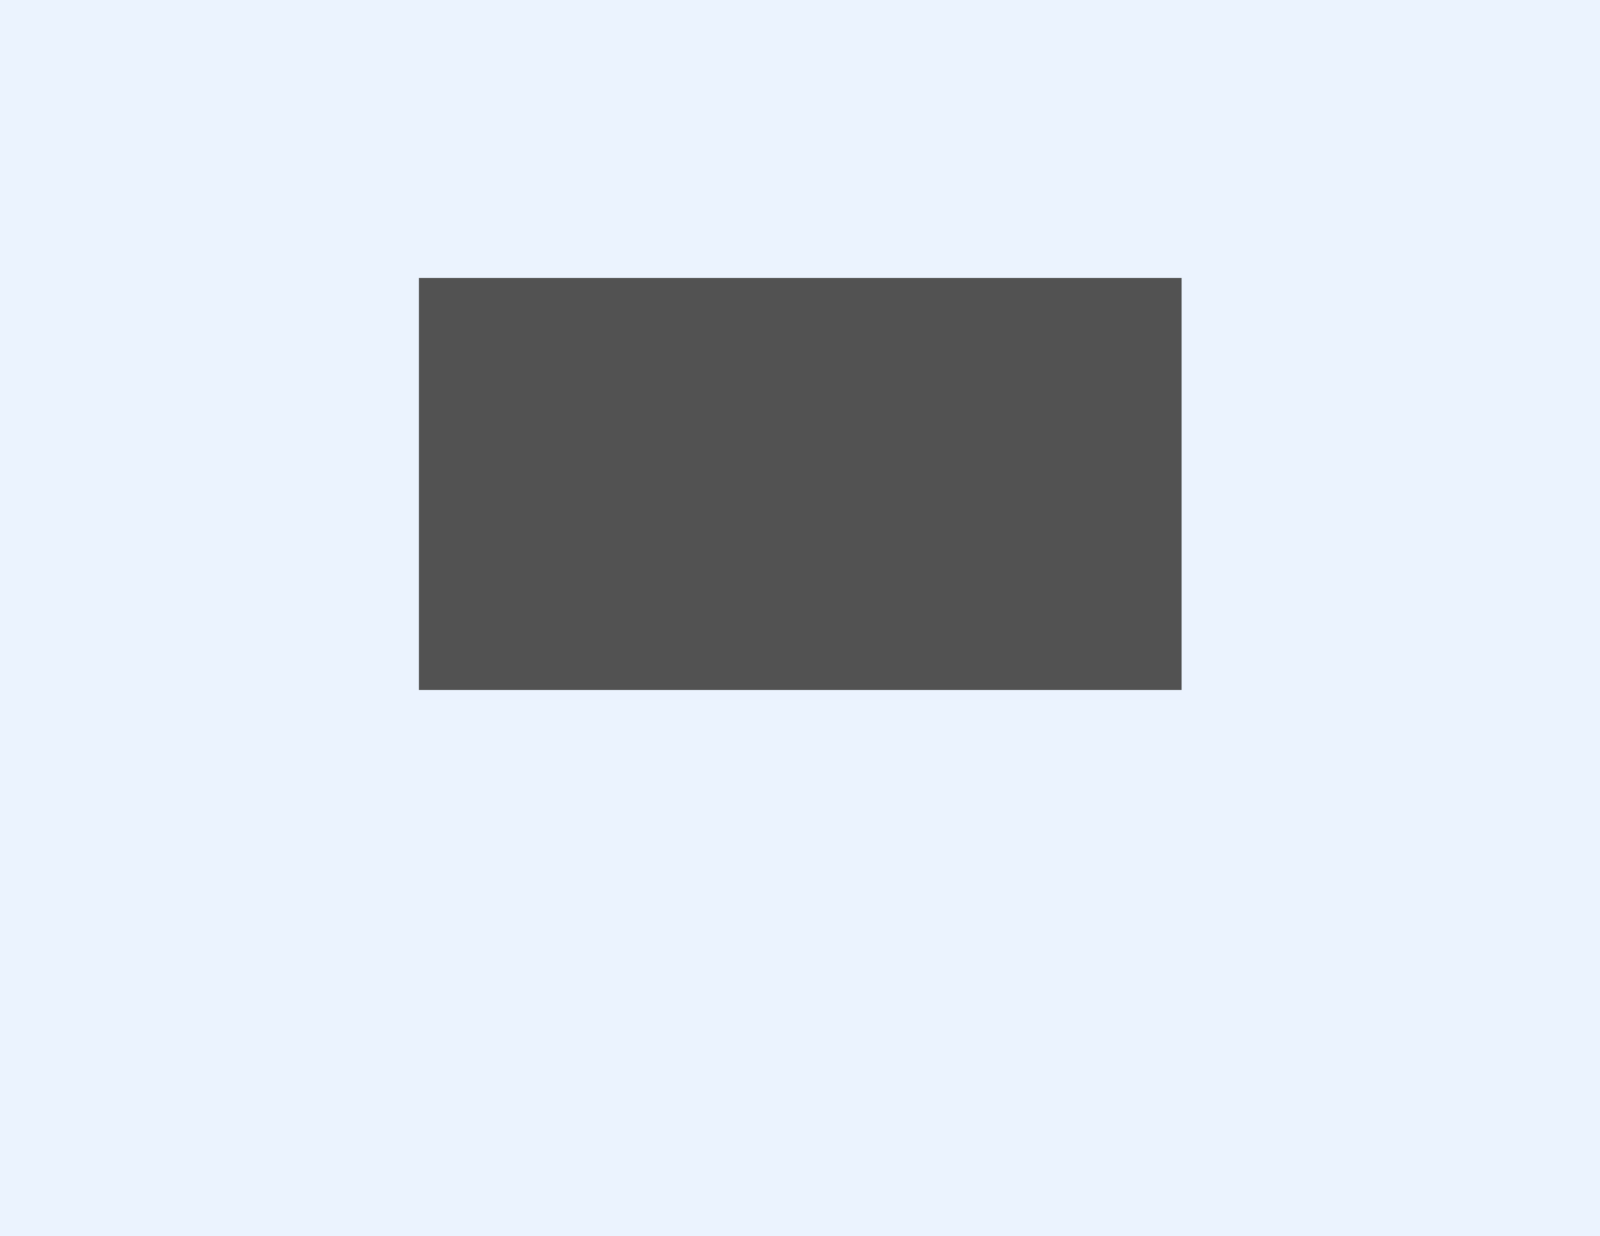 how to add a css box at bottom of screen